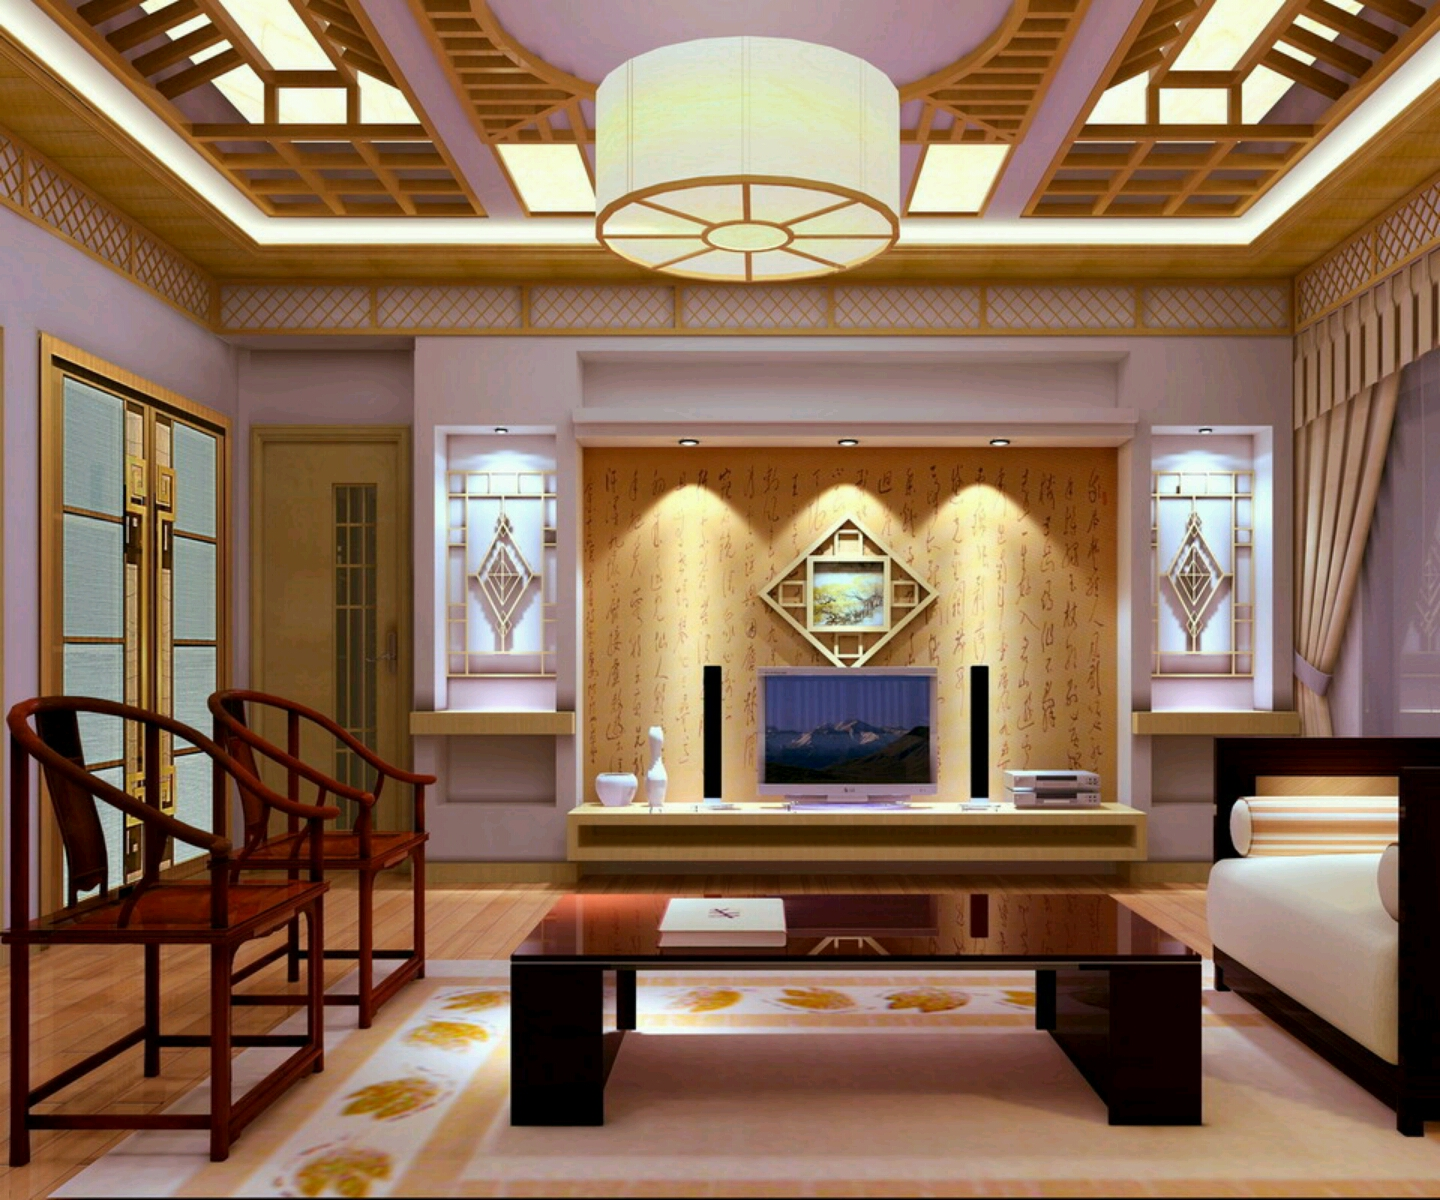 New home designs latest homes interior designs studyrooms for New house interior design